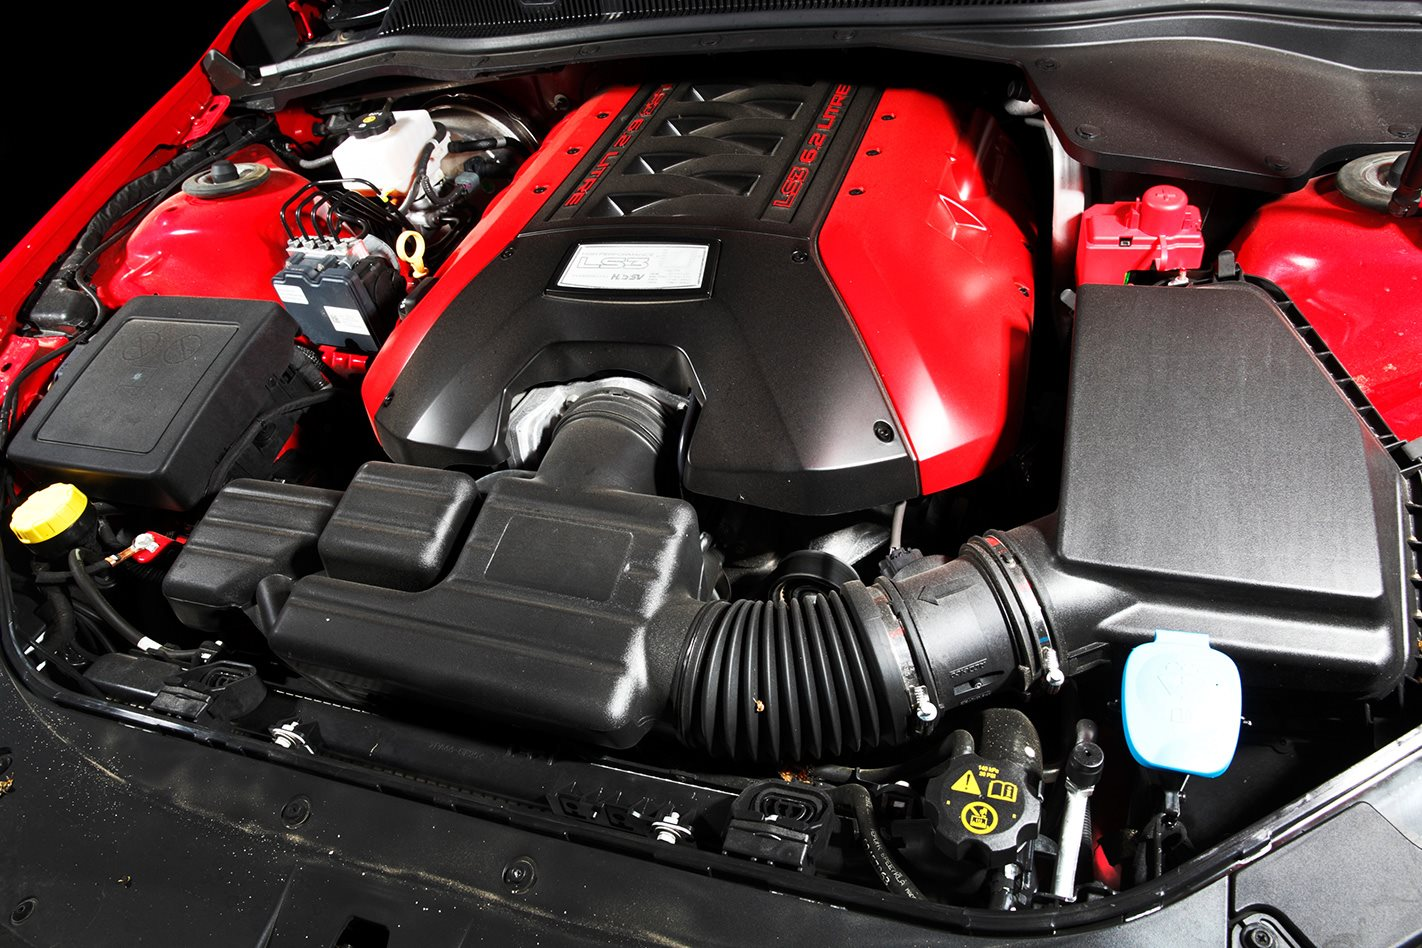 2013 HSV Clubsport engine